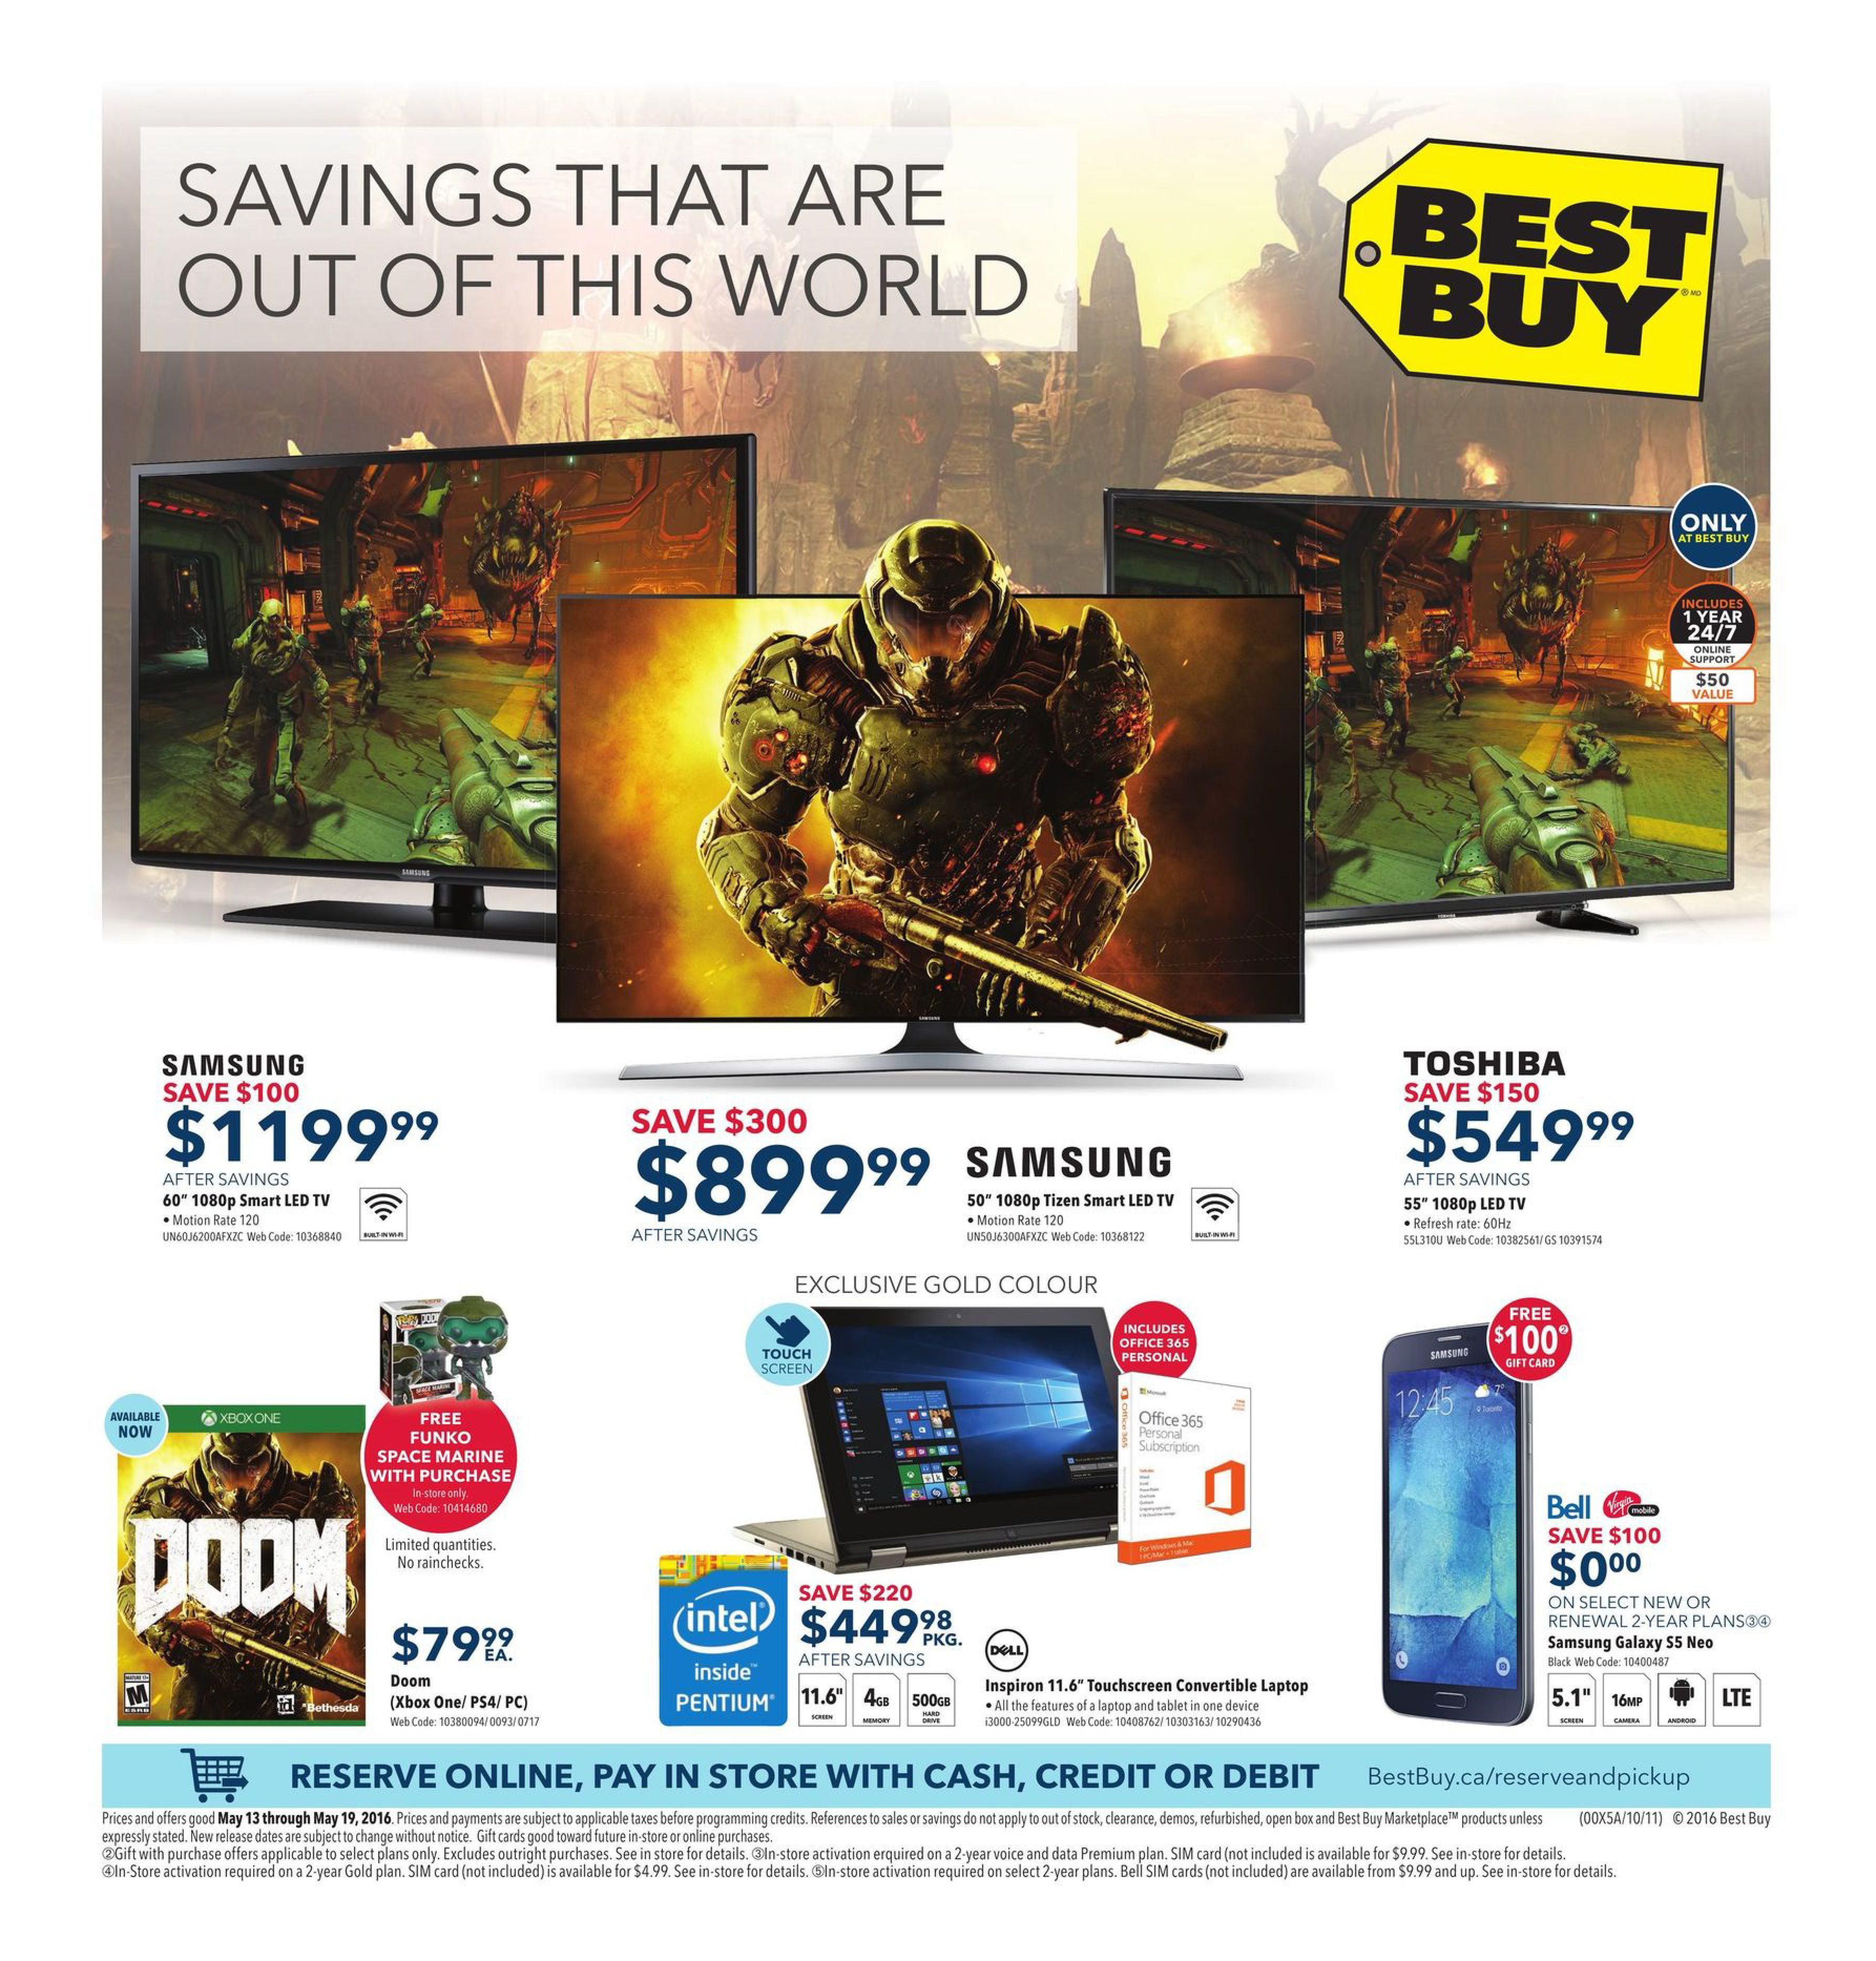 Best Buy Weekly Flyer Savings That Are Out Of This World Sandisk Micro Sd 4gb Original Unpack May 13 19